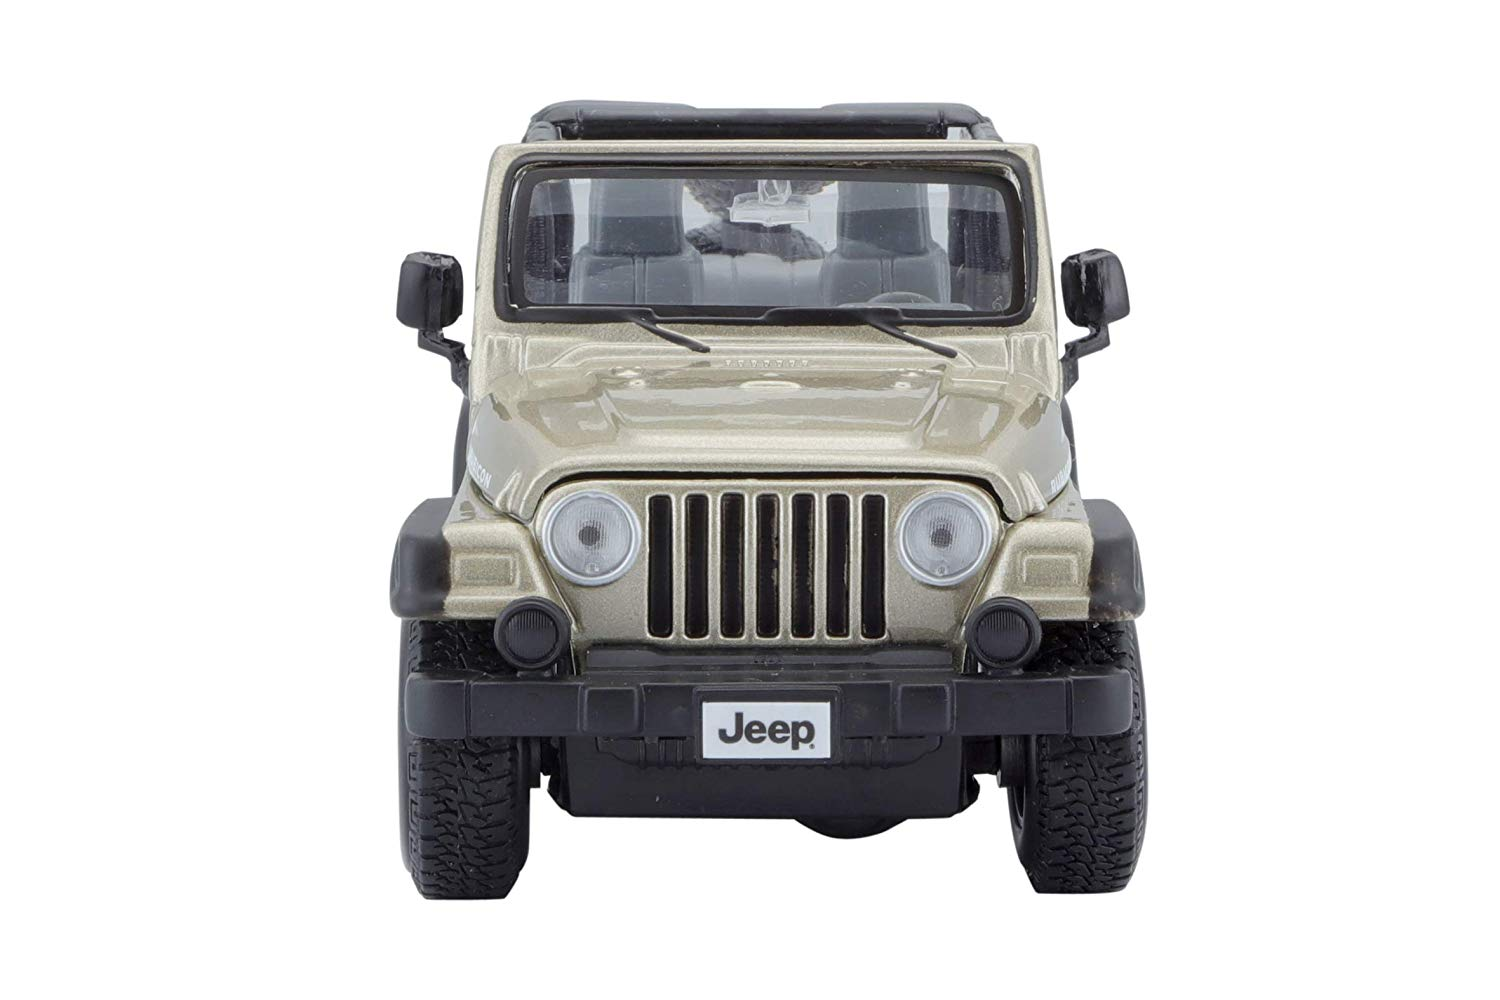 1:24th Special Edition – Jeep Wrangler Rubicon